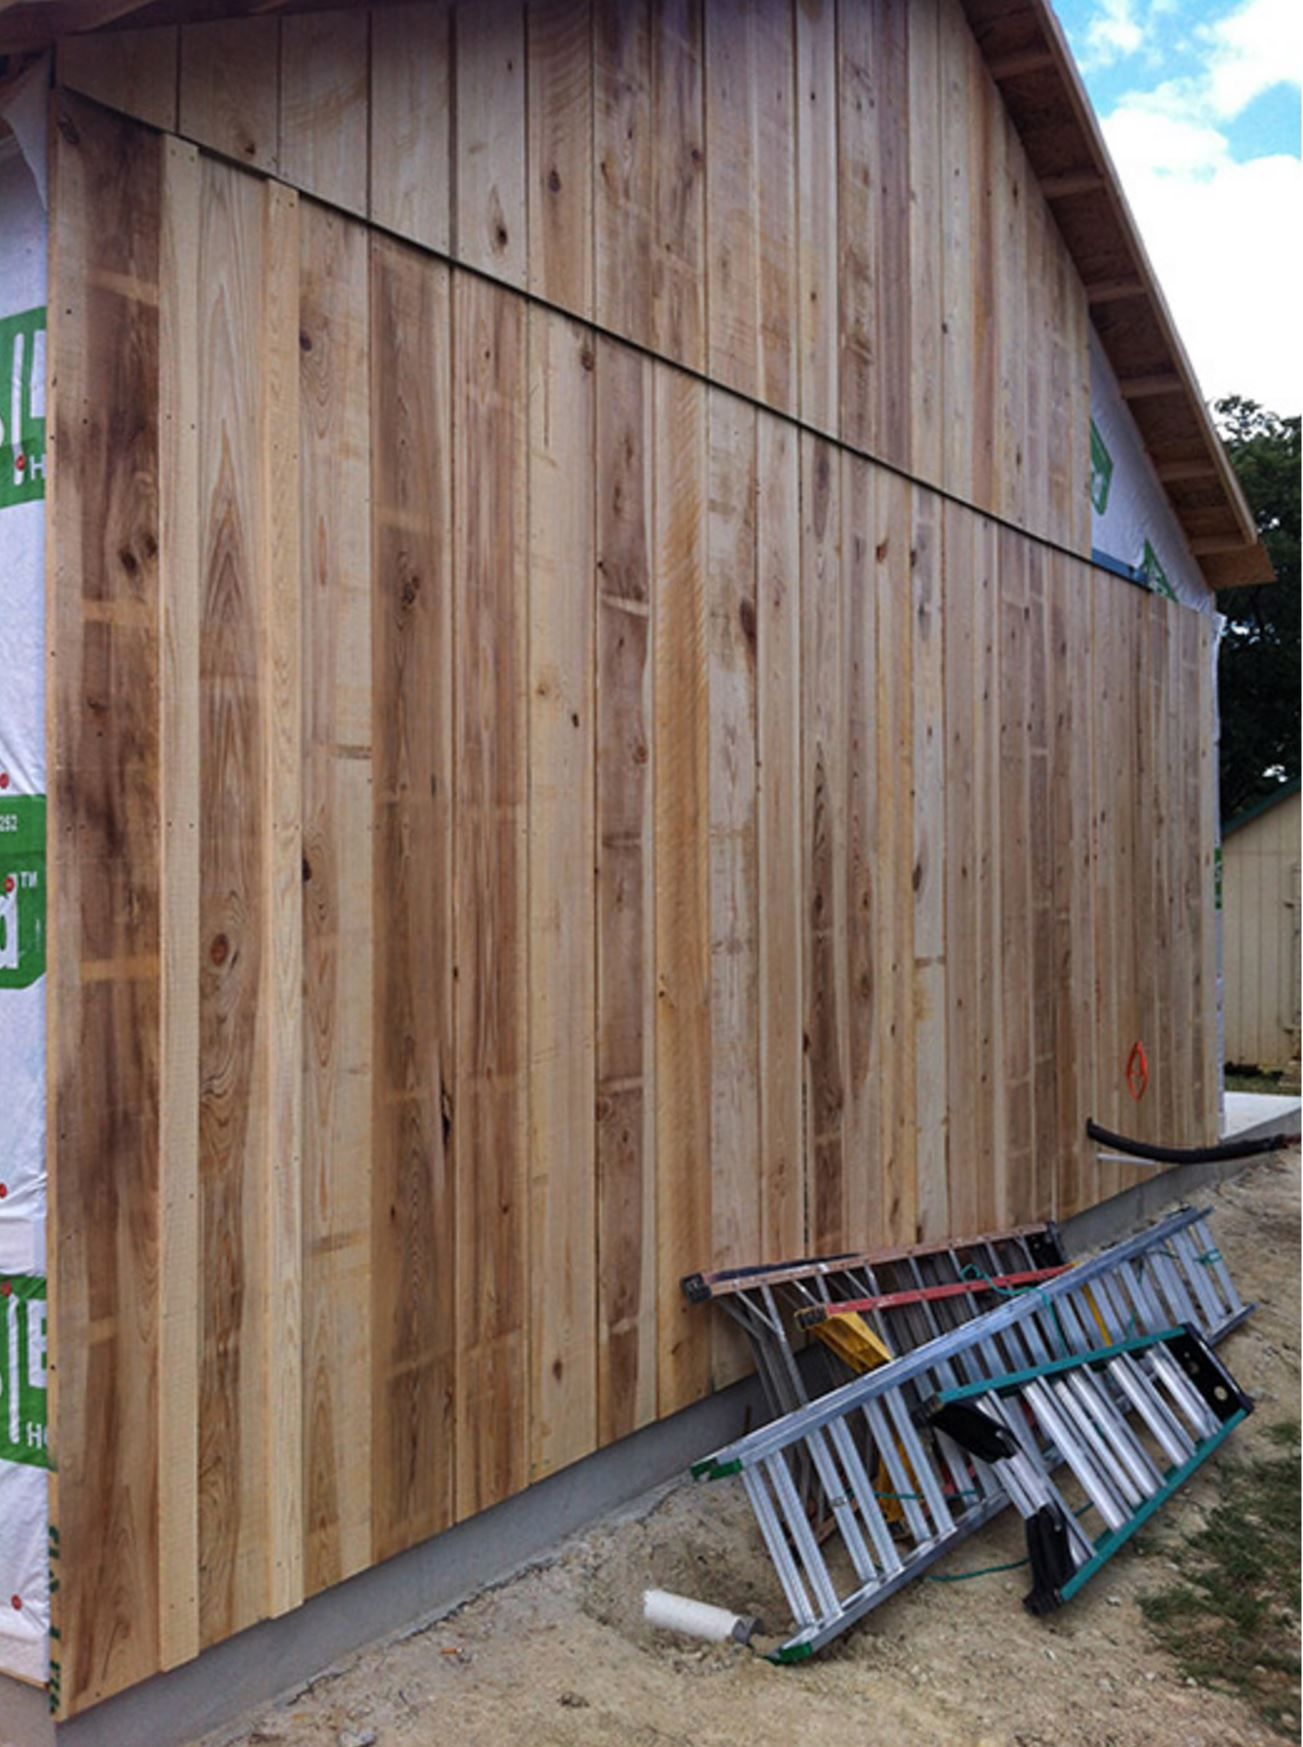 Cypress No 2 Grade Board And Batten Siding Wood Siding Exterior Siding Barn Siding